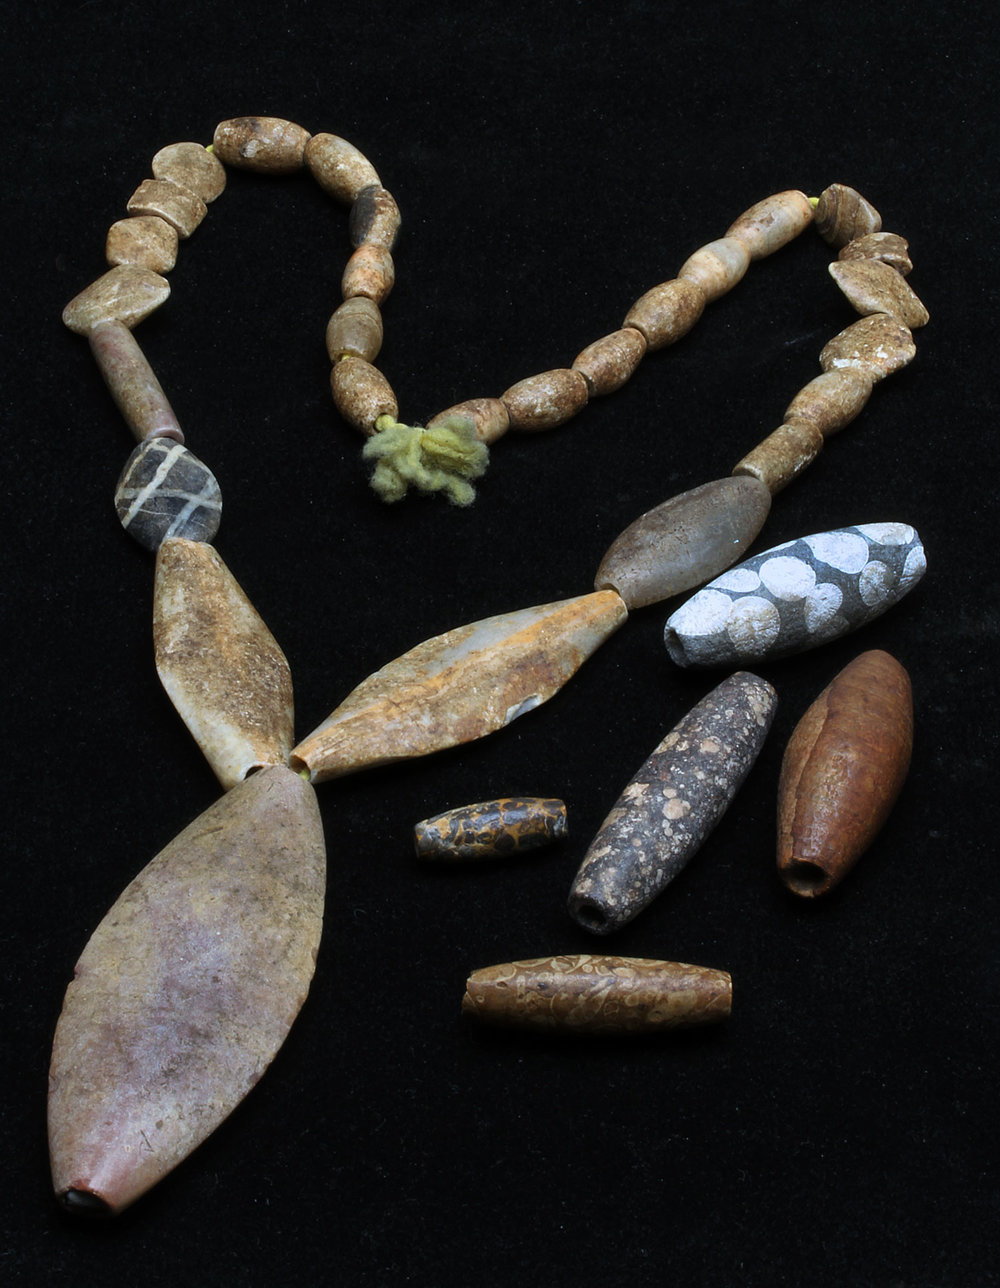 Strand of ancient stone beads from Afghanistan, collected in the 1960s by David K. Liu, of non-precious stones but note excellent crafting. Loose beads are also ancient, from the 1980s, courtesy of the late J. L. Malter. RKL